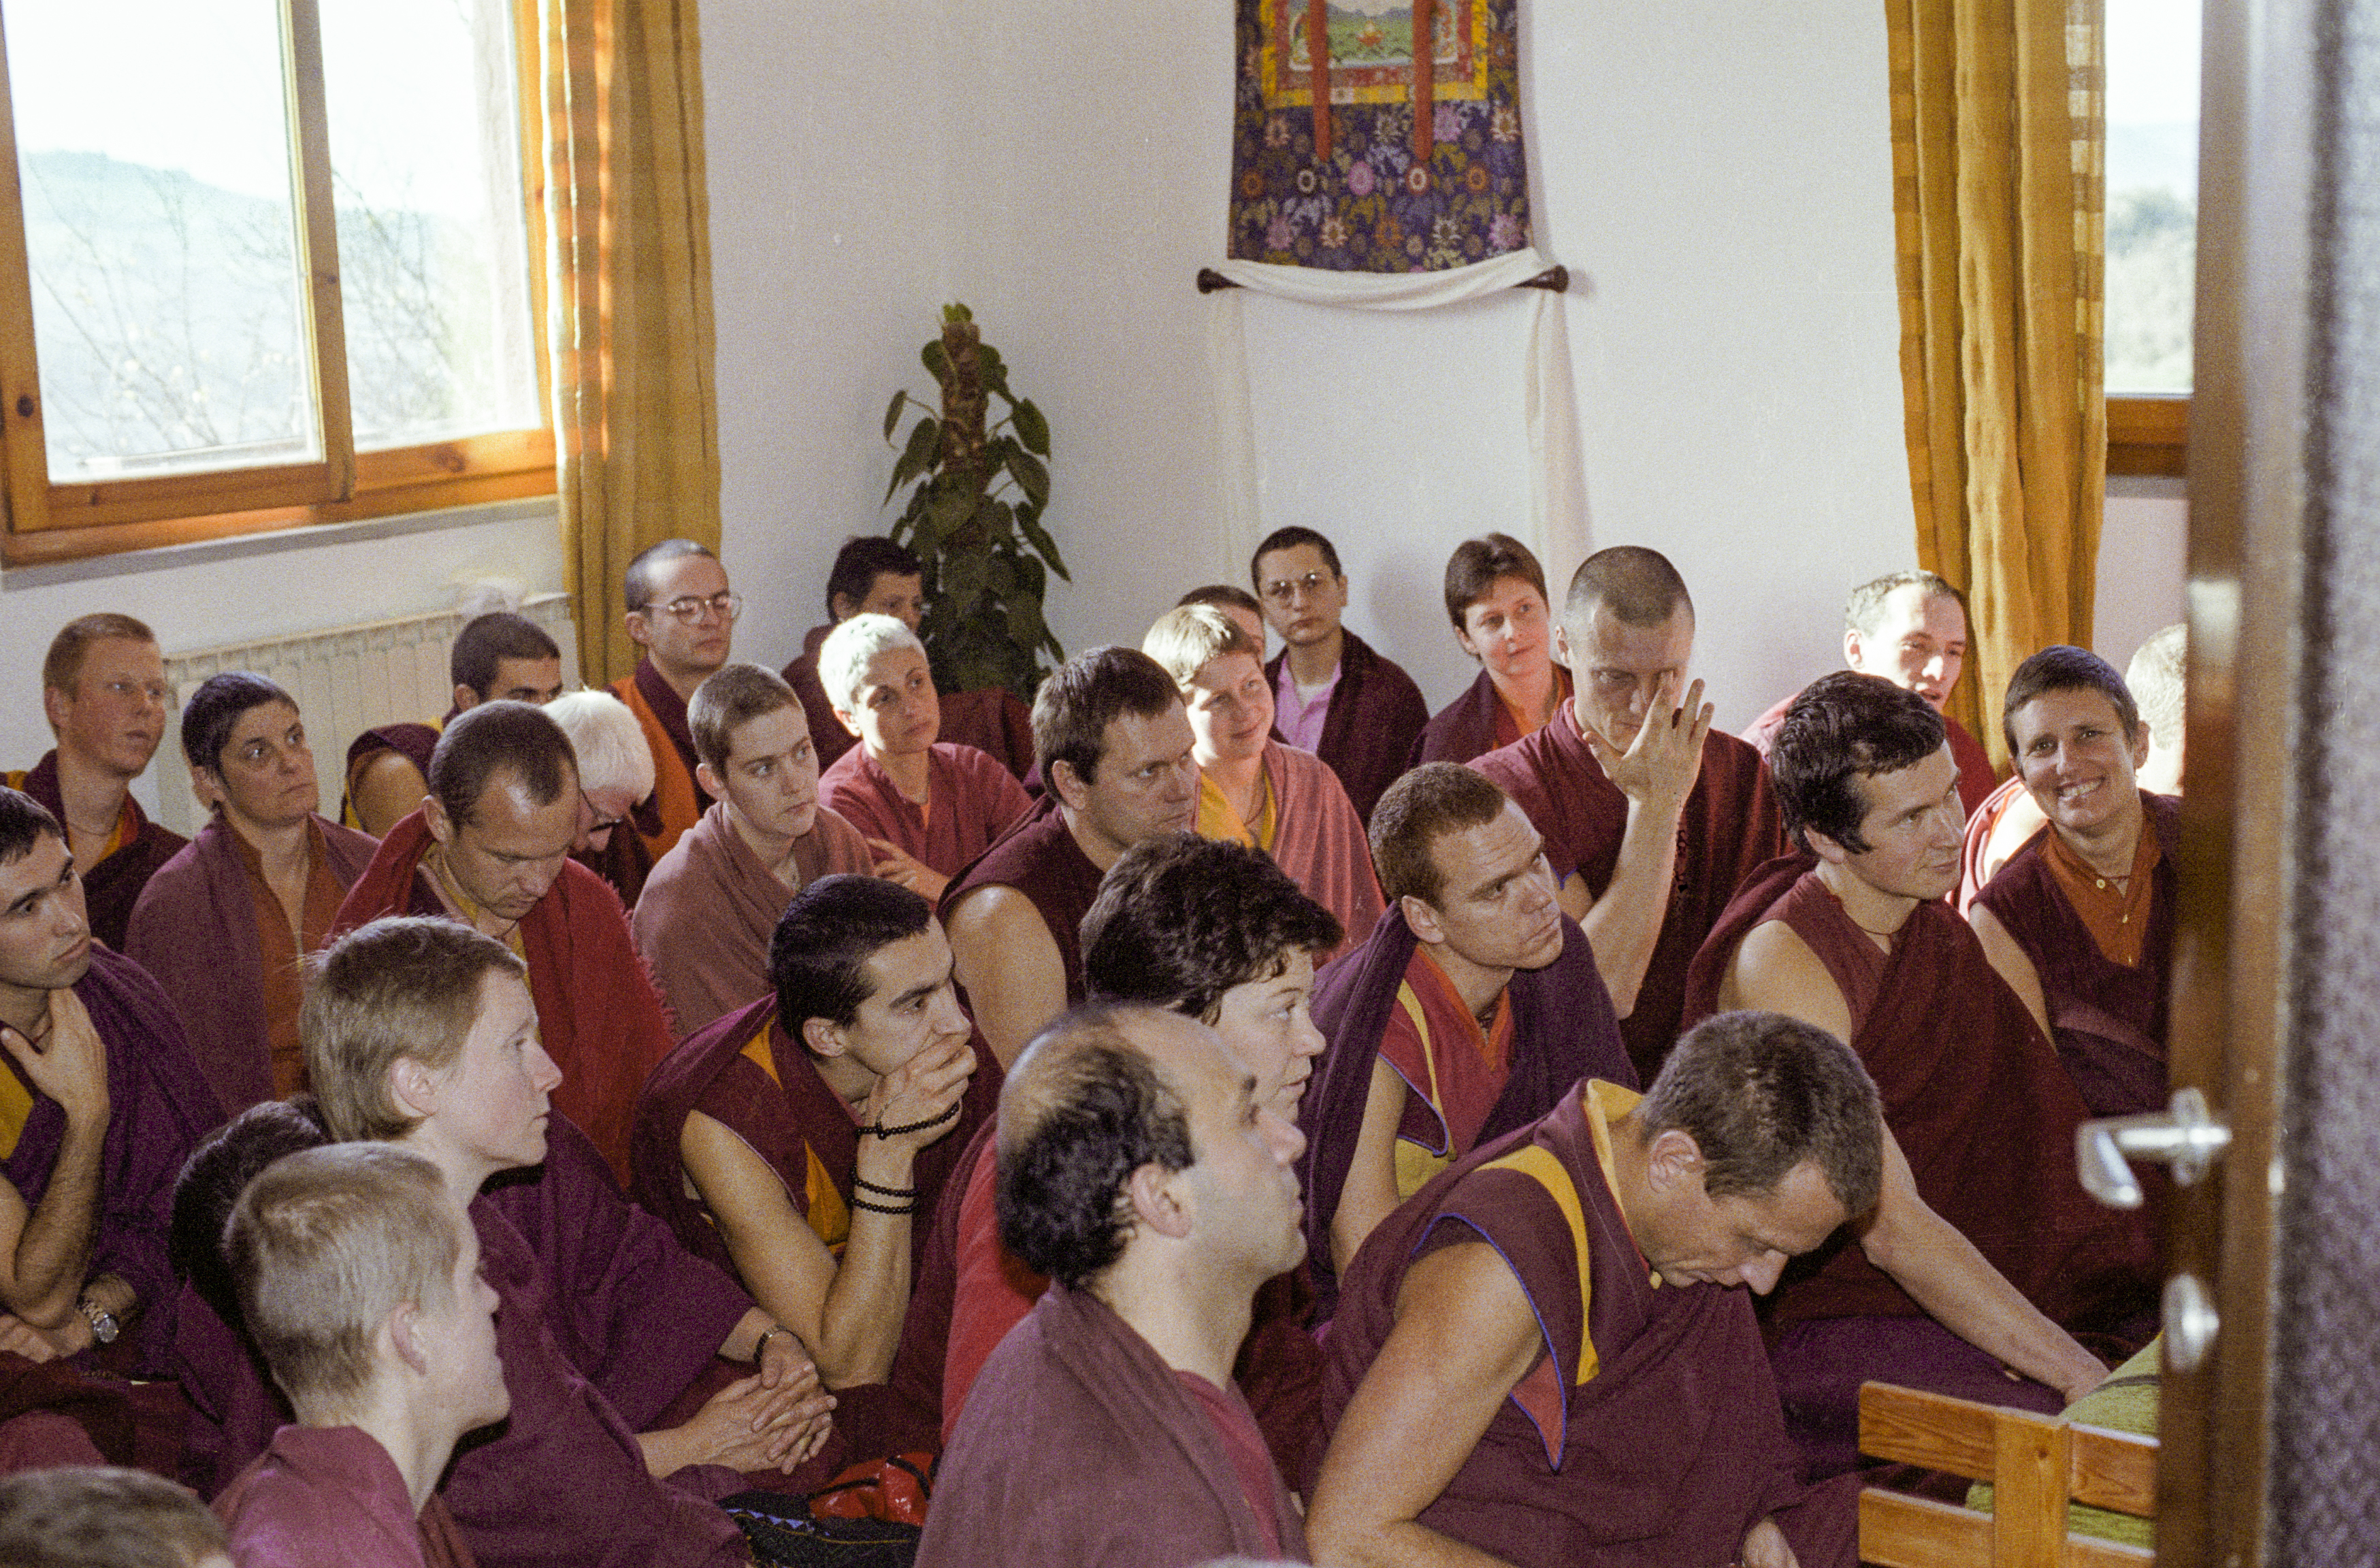 (15236_ng.tif) Lama Yeshe addressing western monks and nuns at Istituto Lama Tsongkhapa, Italy, 1983. Photos donated by Merry Colony.